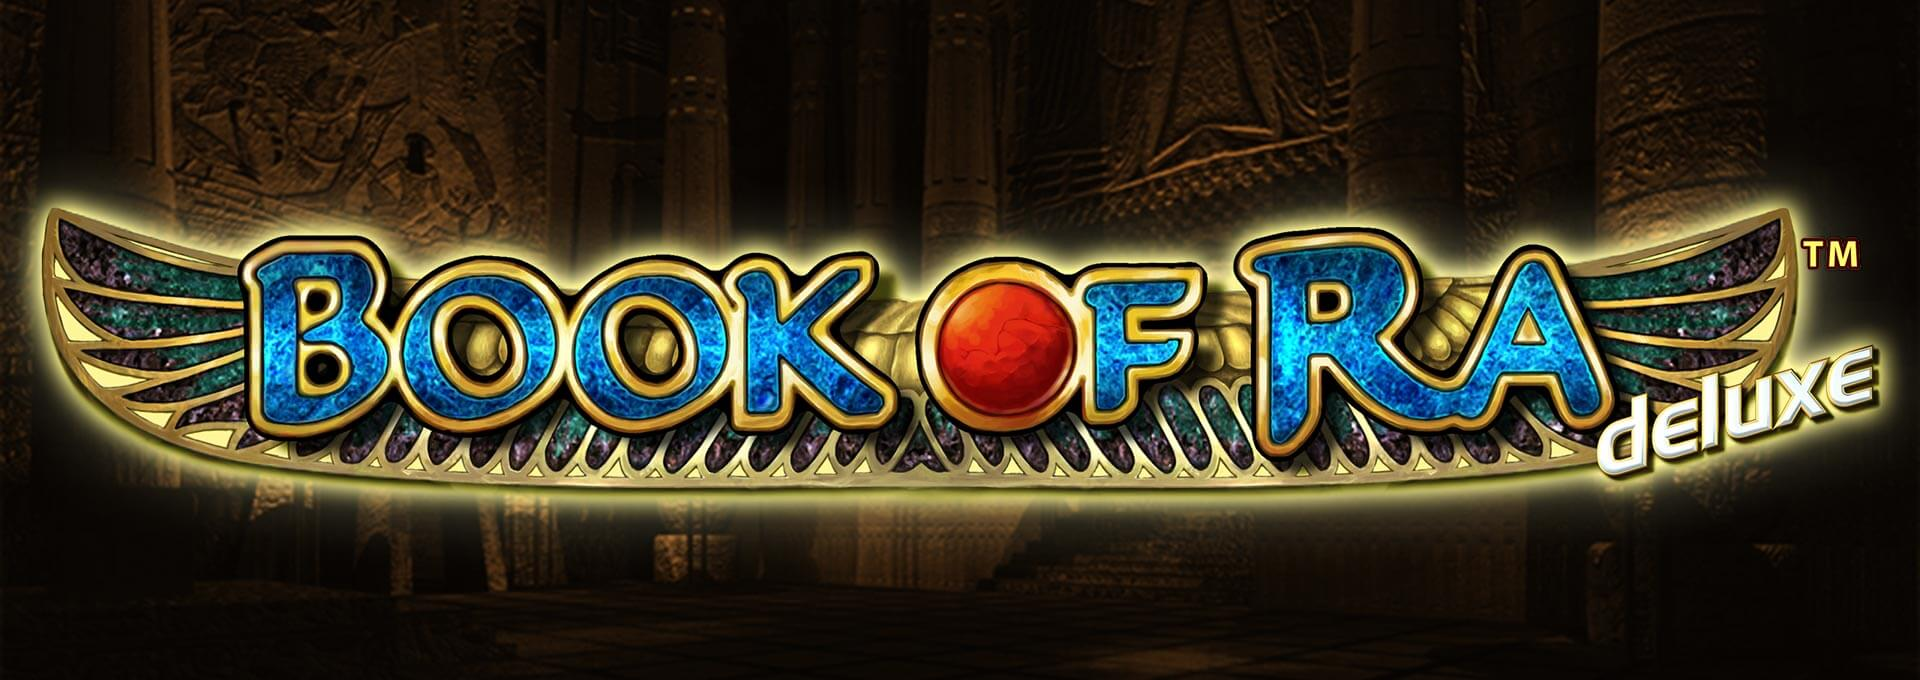 svenska online casino slots book of ra free download